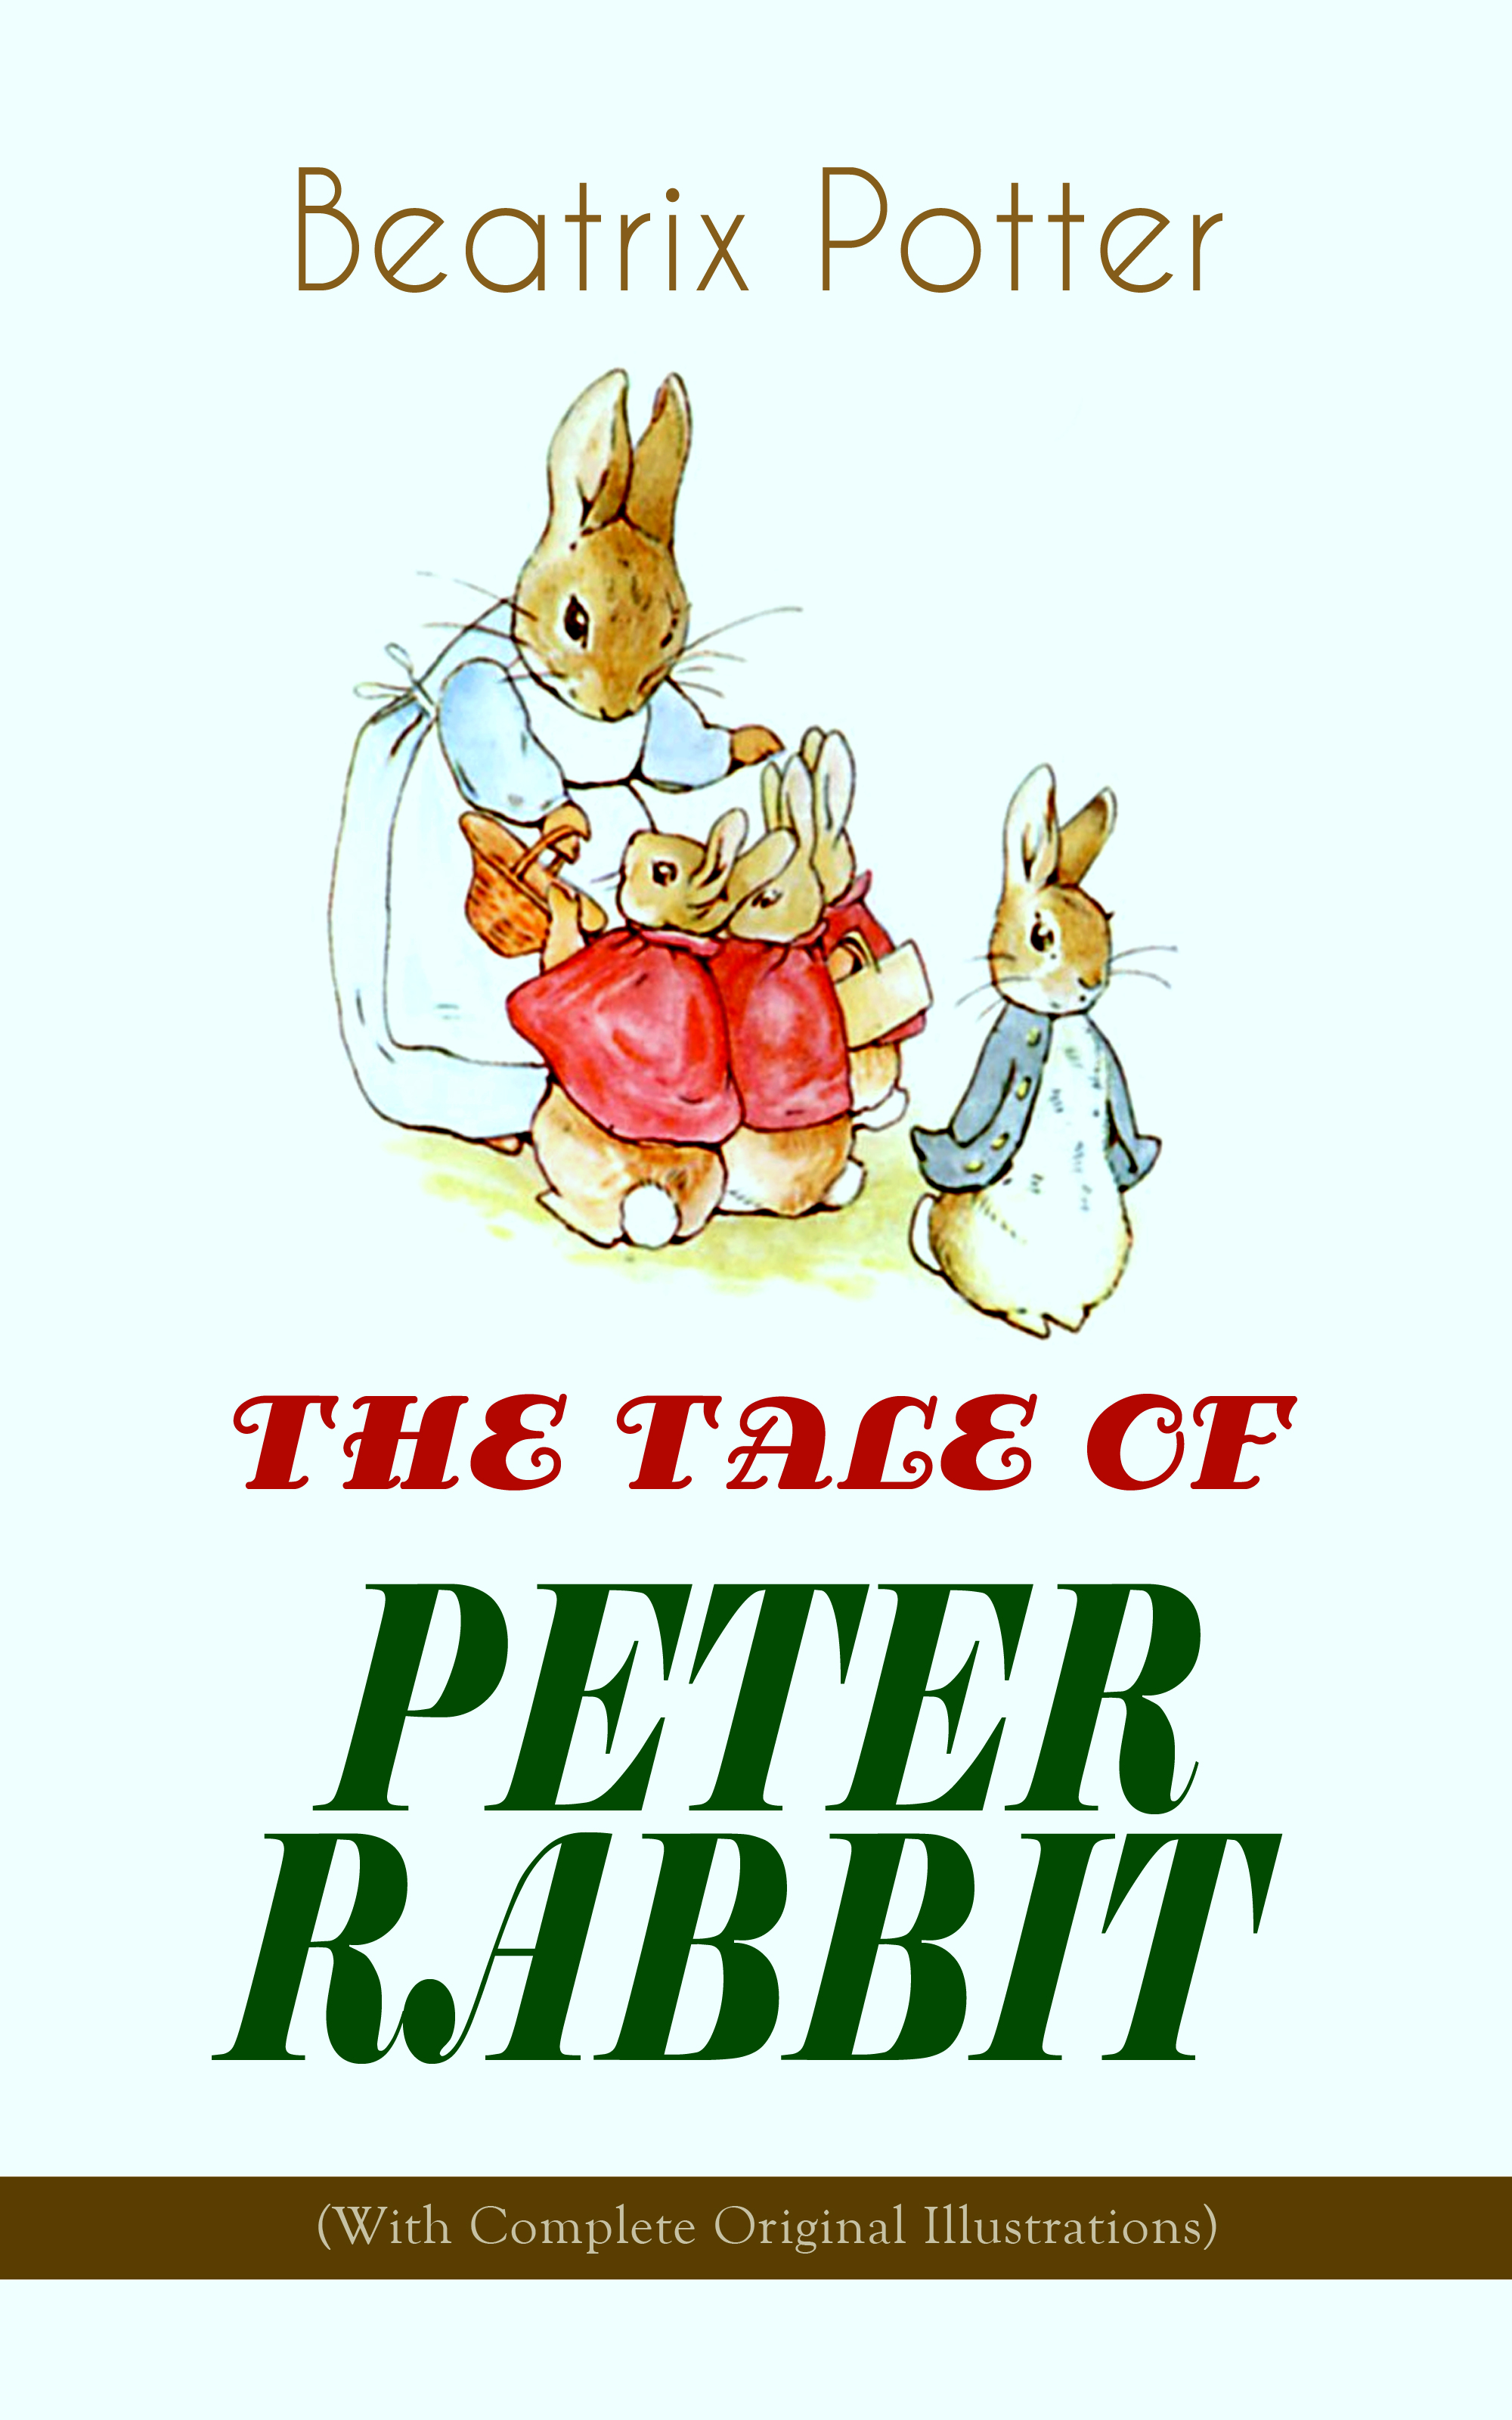 Beatrix Potter THE TALE OF PETER RABBIT (With Complete Original Illustrations) the complete adventures of peter rabbit